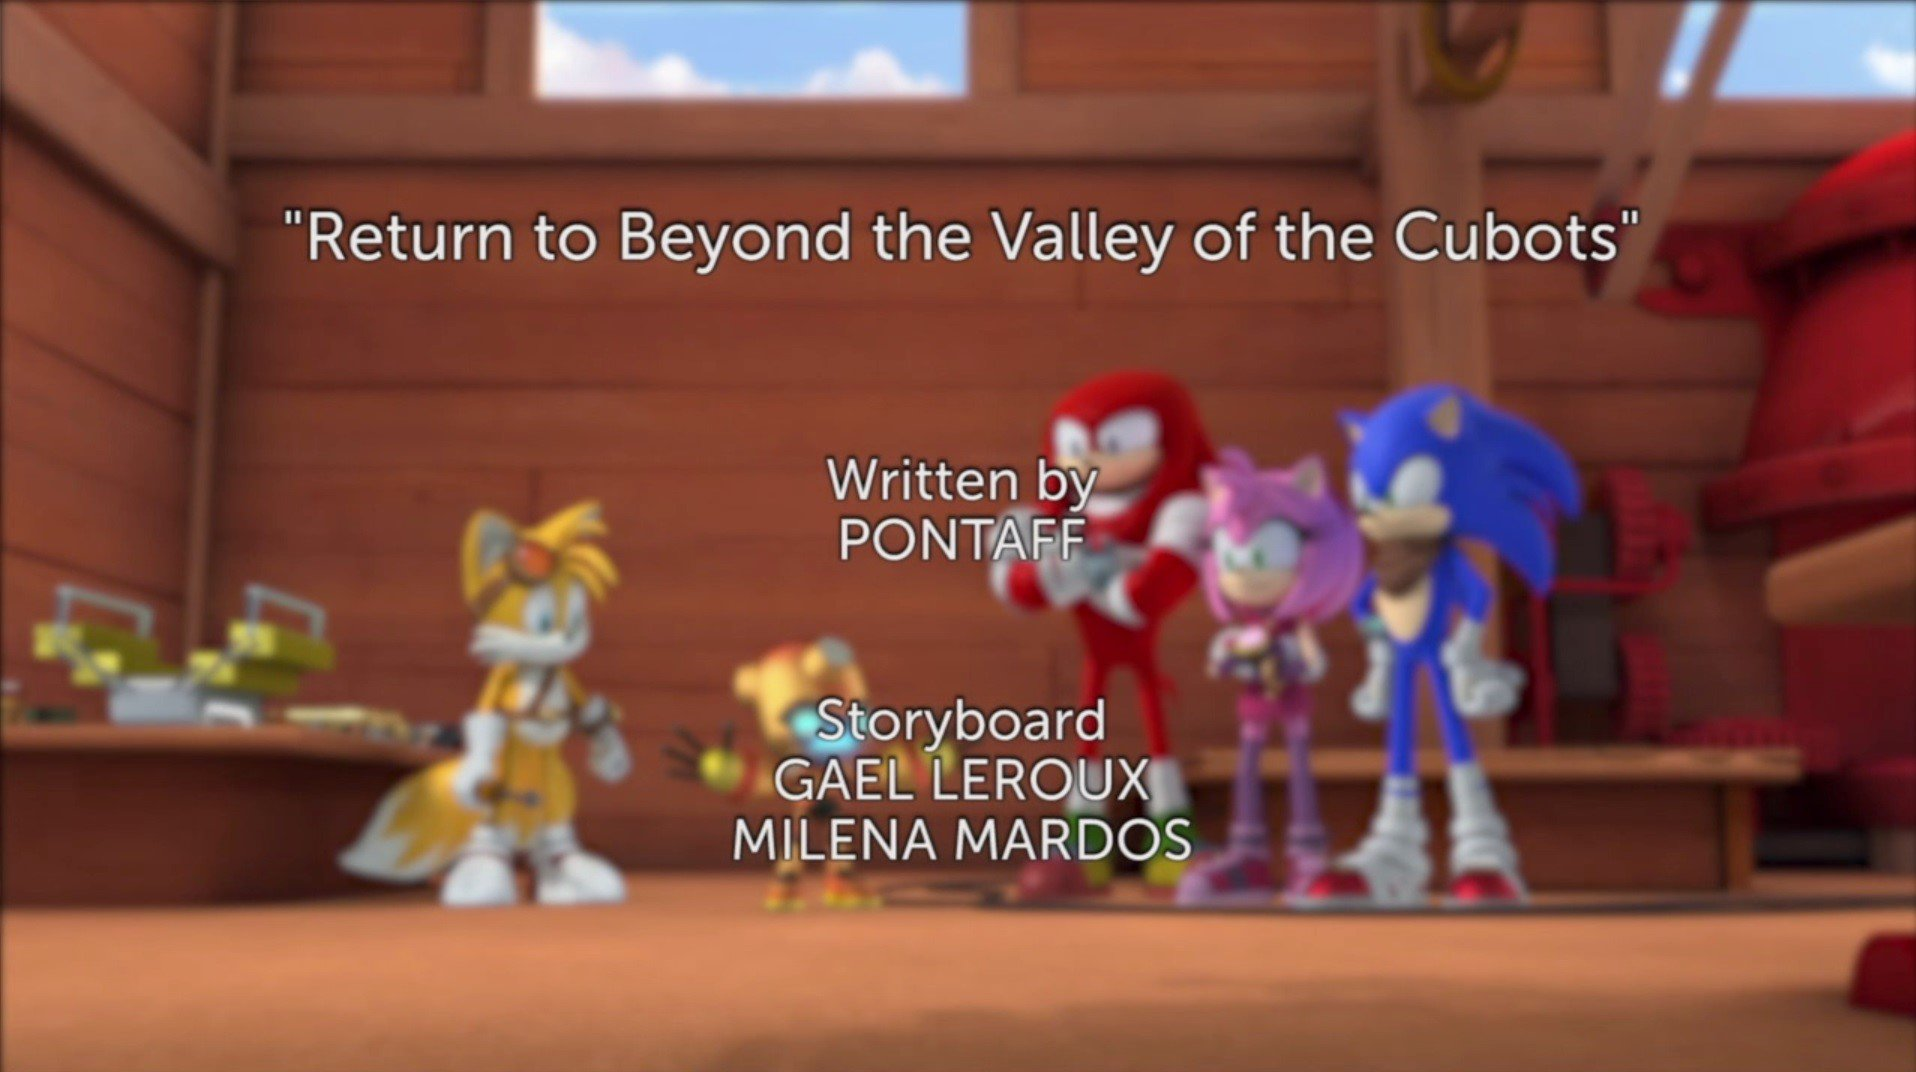 Return to Beyond the Valley of Cubots Title Card